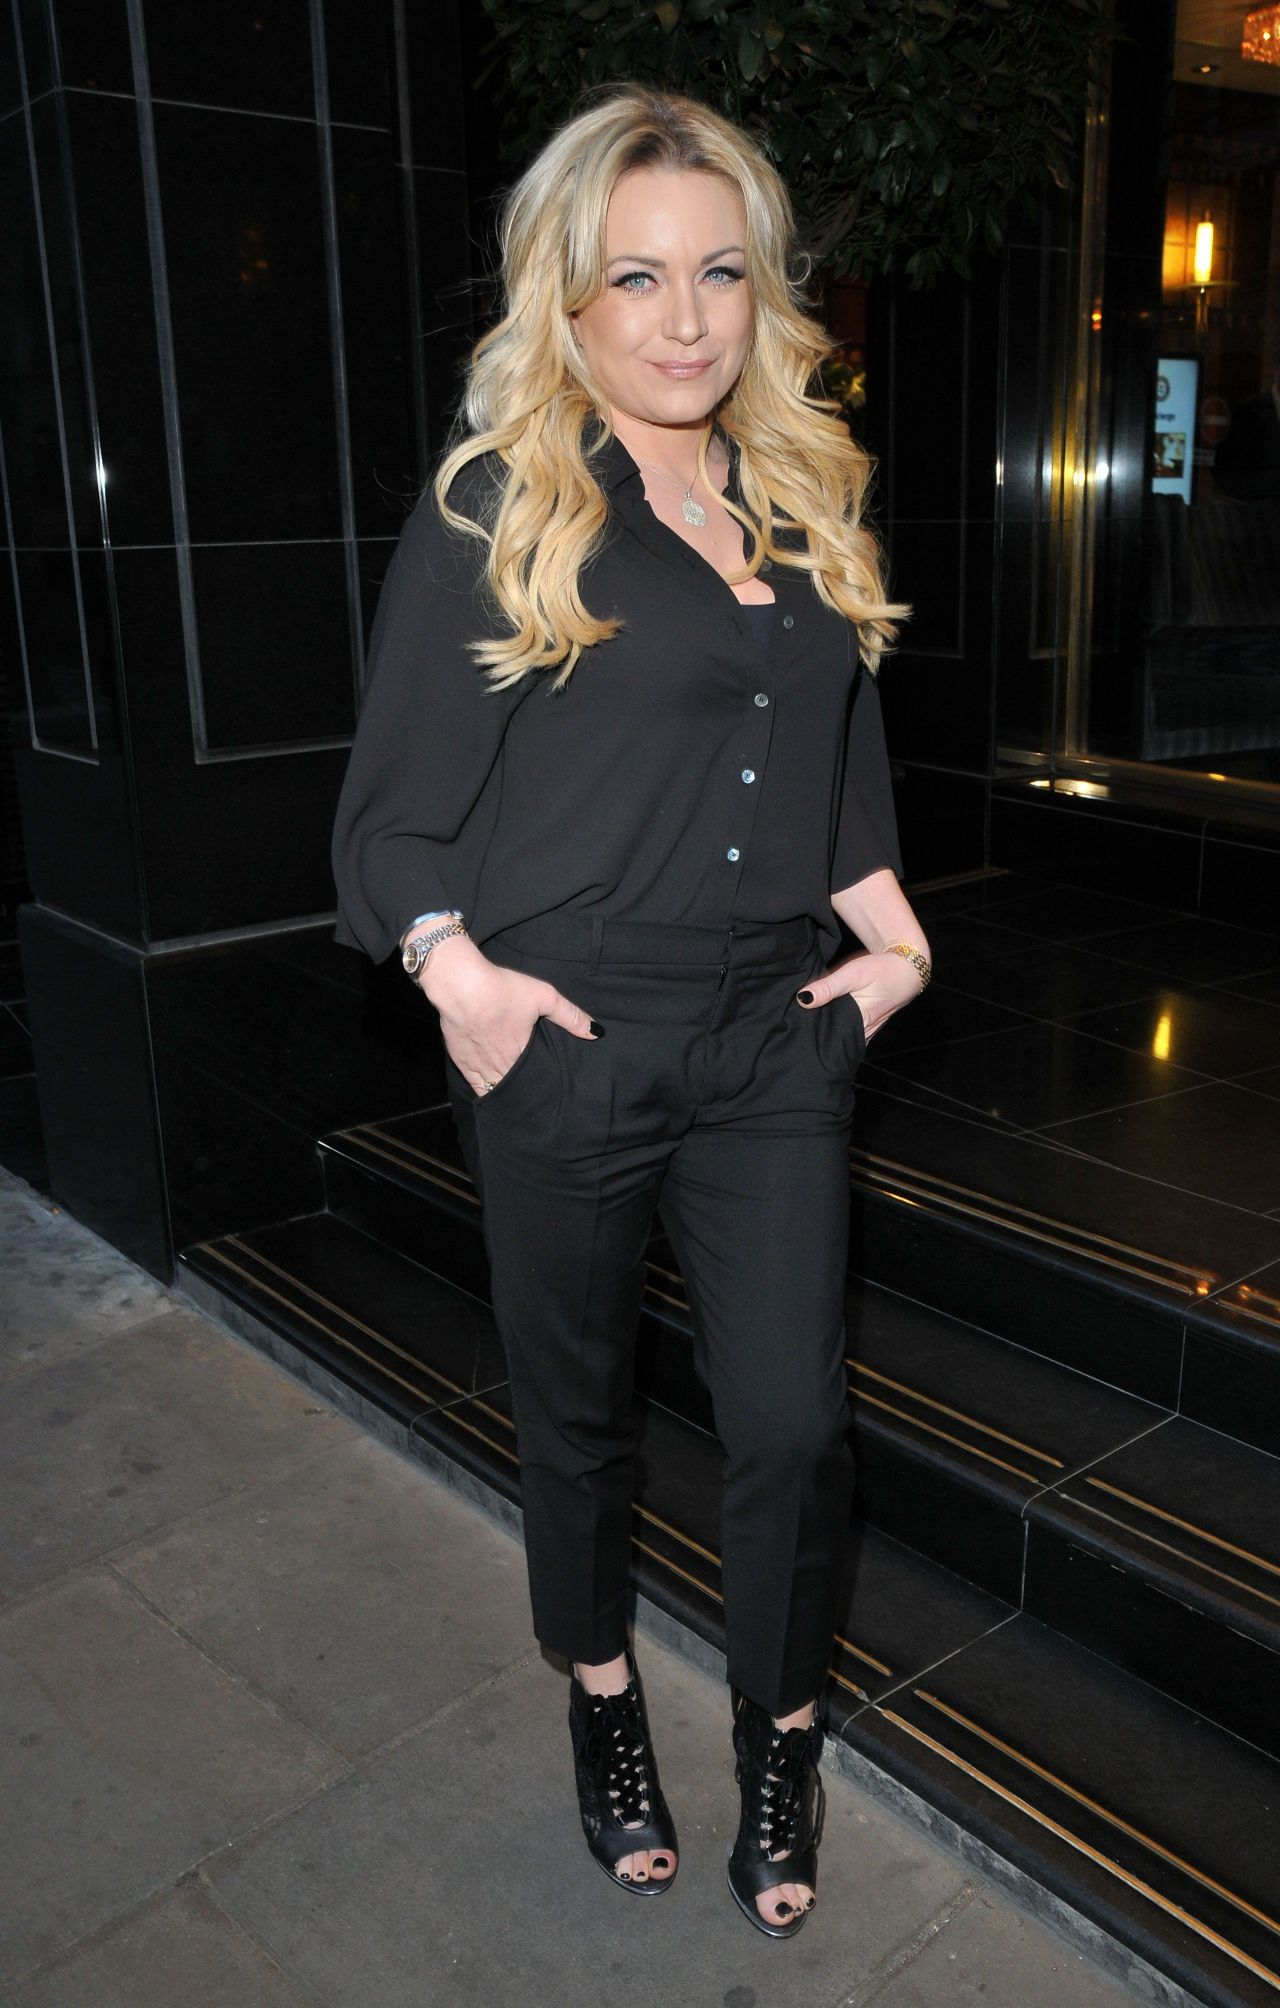 Meias De L Em Tric Receita also Georgia May Foote At Tric Awards At The Grosvenor House Hotel additionally Contemporain Potelet Ext Rieur likewise Rita Simons Boxing With The Stars London furthermore Paloma Faith At Lorraine Show In London. on tric